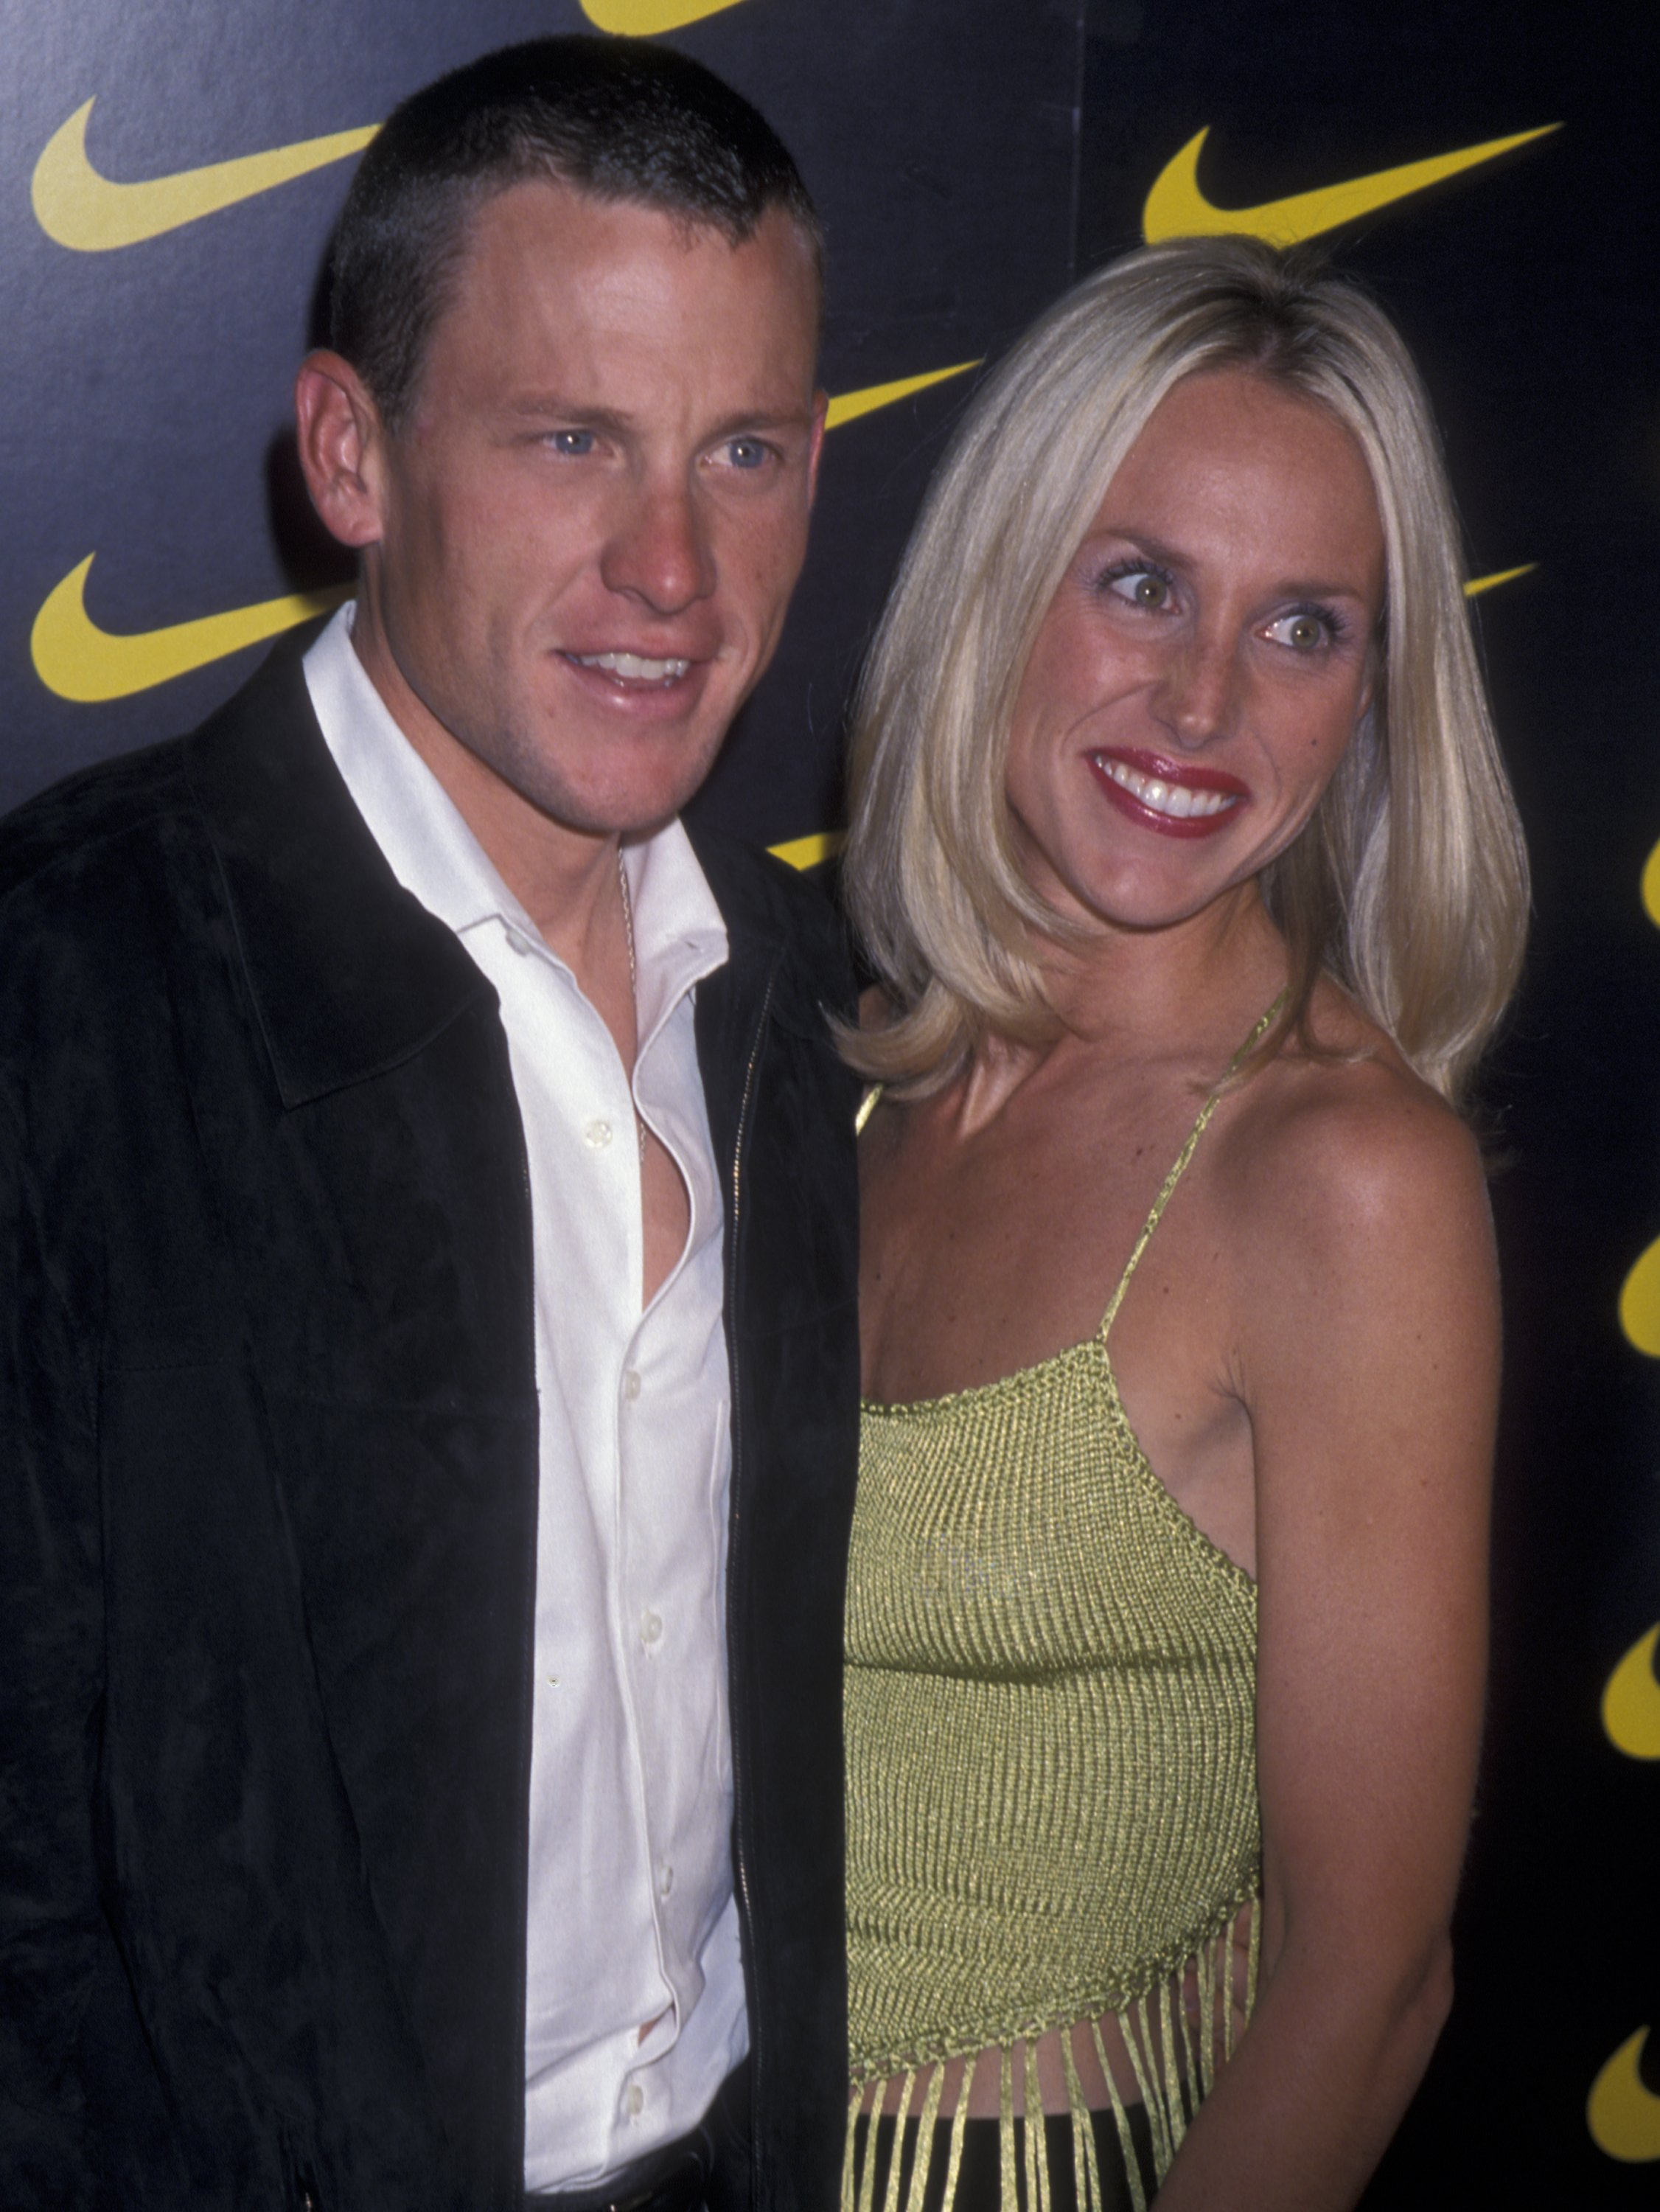 """Lance Armstrong and Kristin Richard attend the premiere of """"Lantana"""" on November 6, 2001 